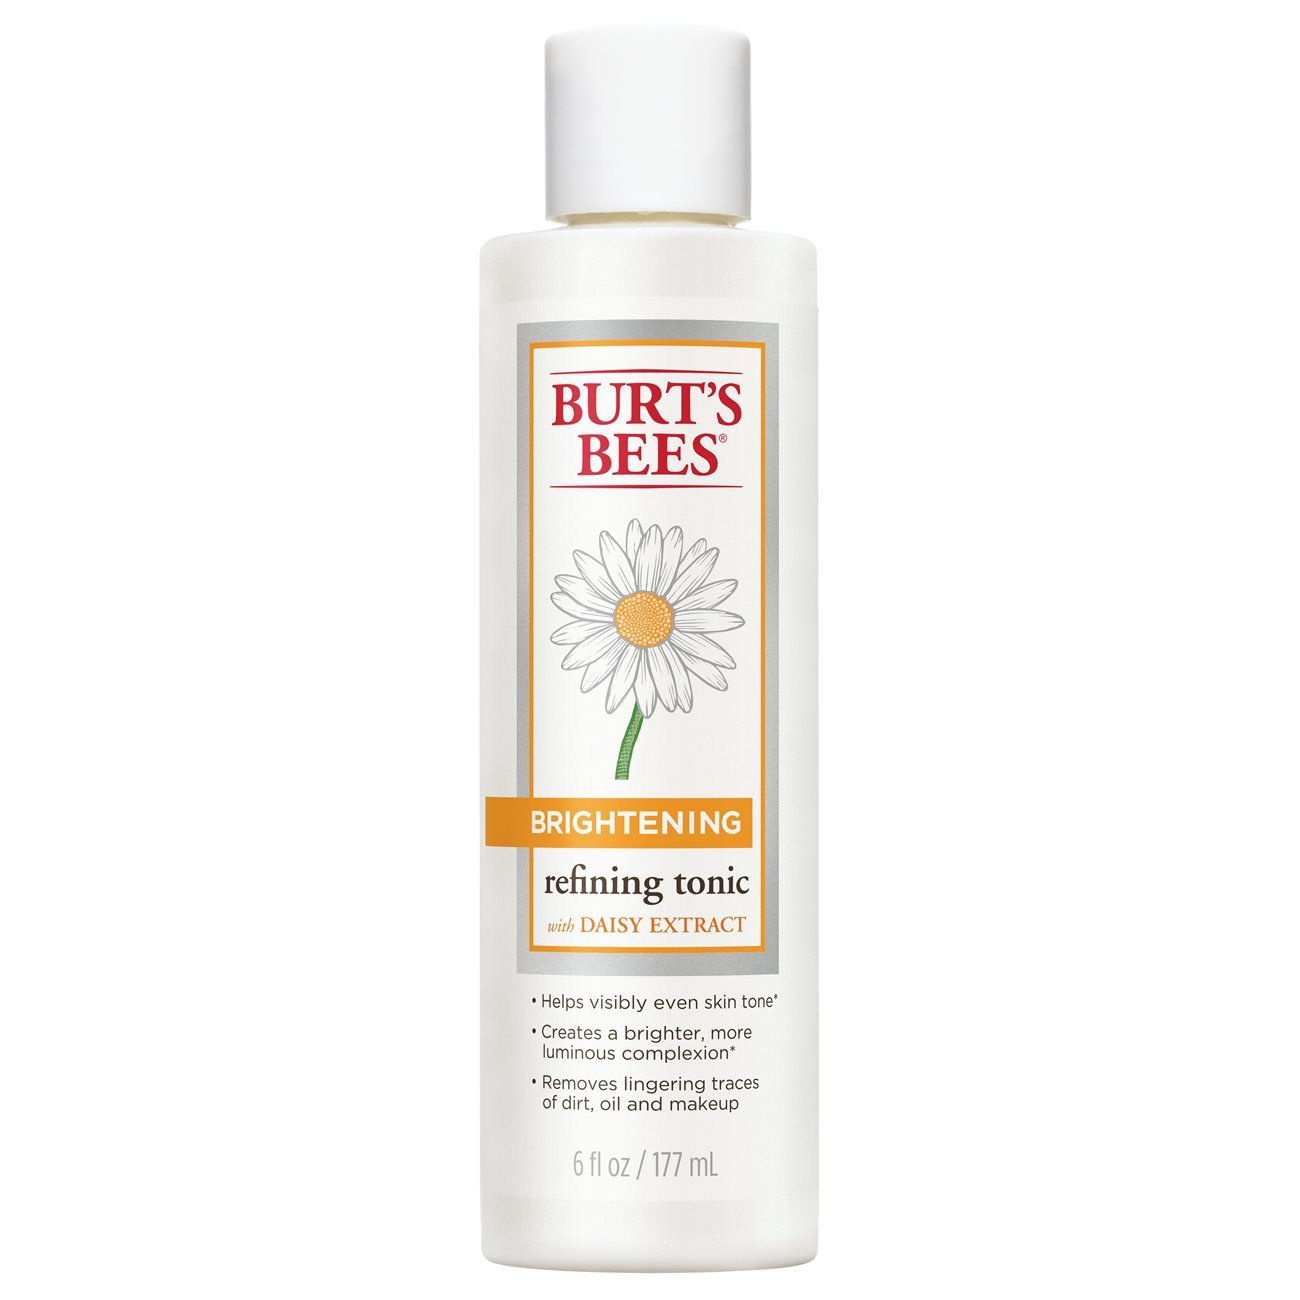 Burts Bees Brightening Eye Treatment, 0.5 Ounce Bliss Triple Oxygen Energizing Vitamin C Day Cream | Hydrates & Brightens for Healthy Glowing Skin 1.7 oz